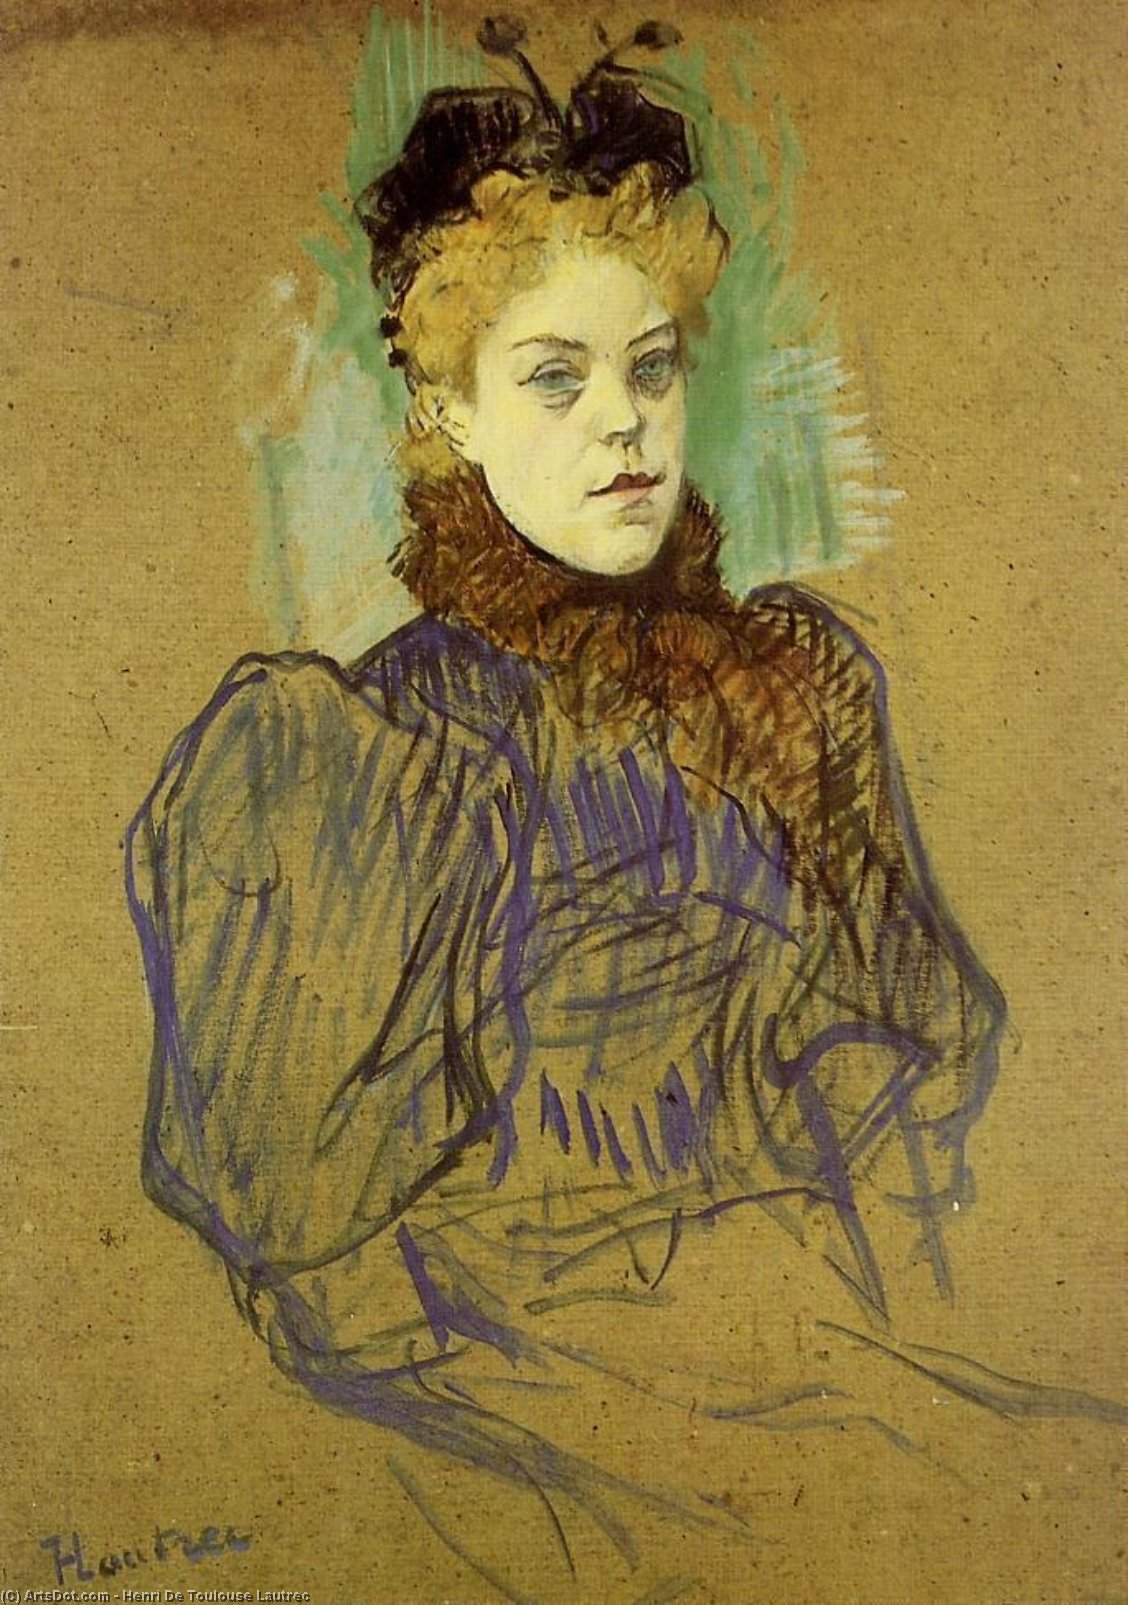 May Milton, 1895 by Henri De Toulouse Lautrec (1864-1901, France)